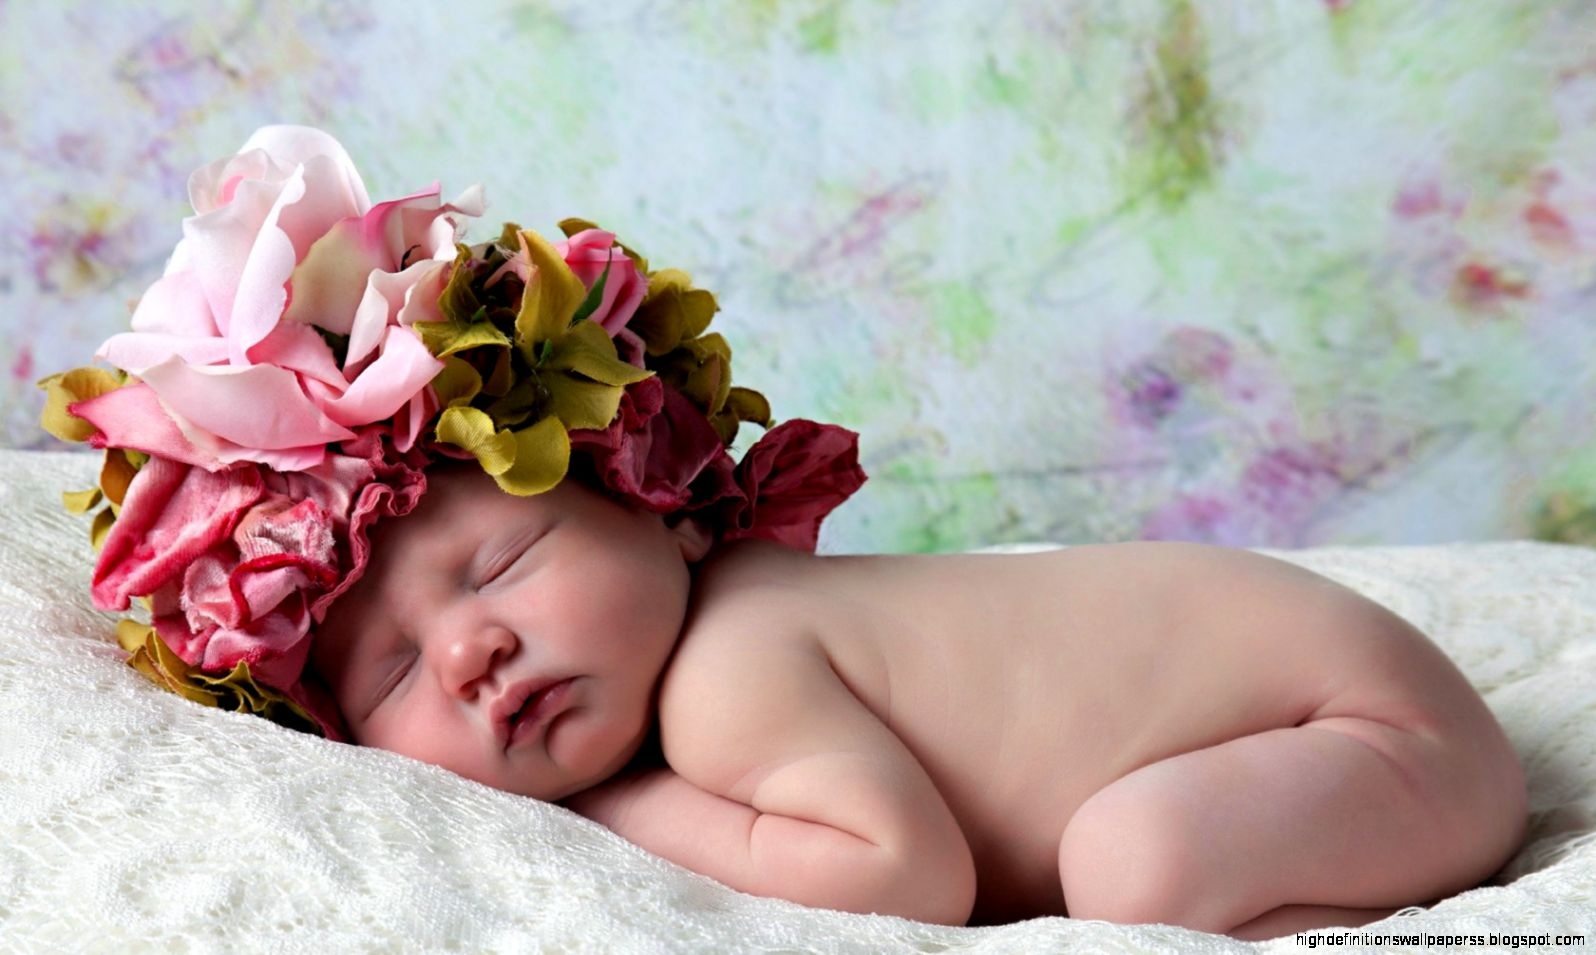 baby-christmas-day-sleeping-lovely-hat-photo-cute-hd-wallpaper